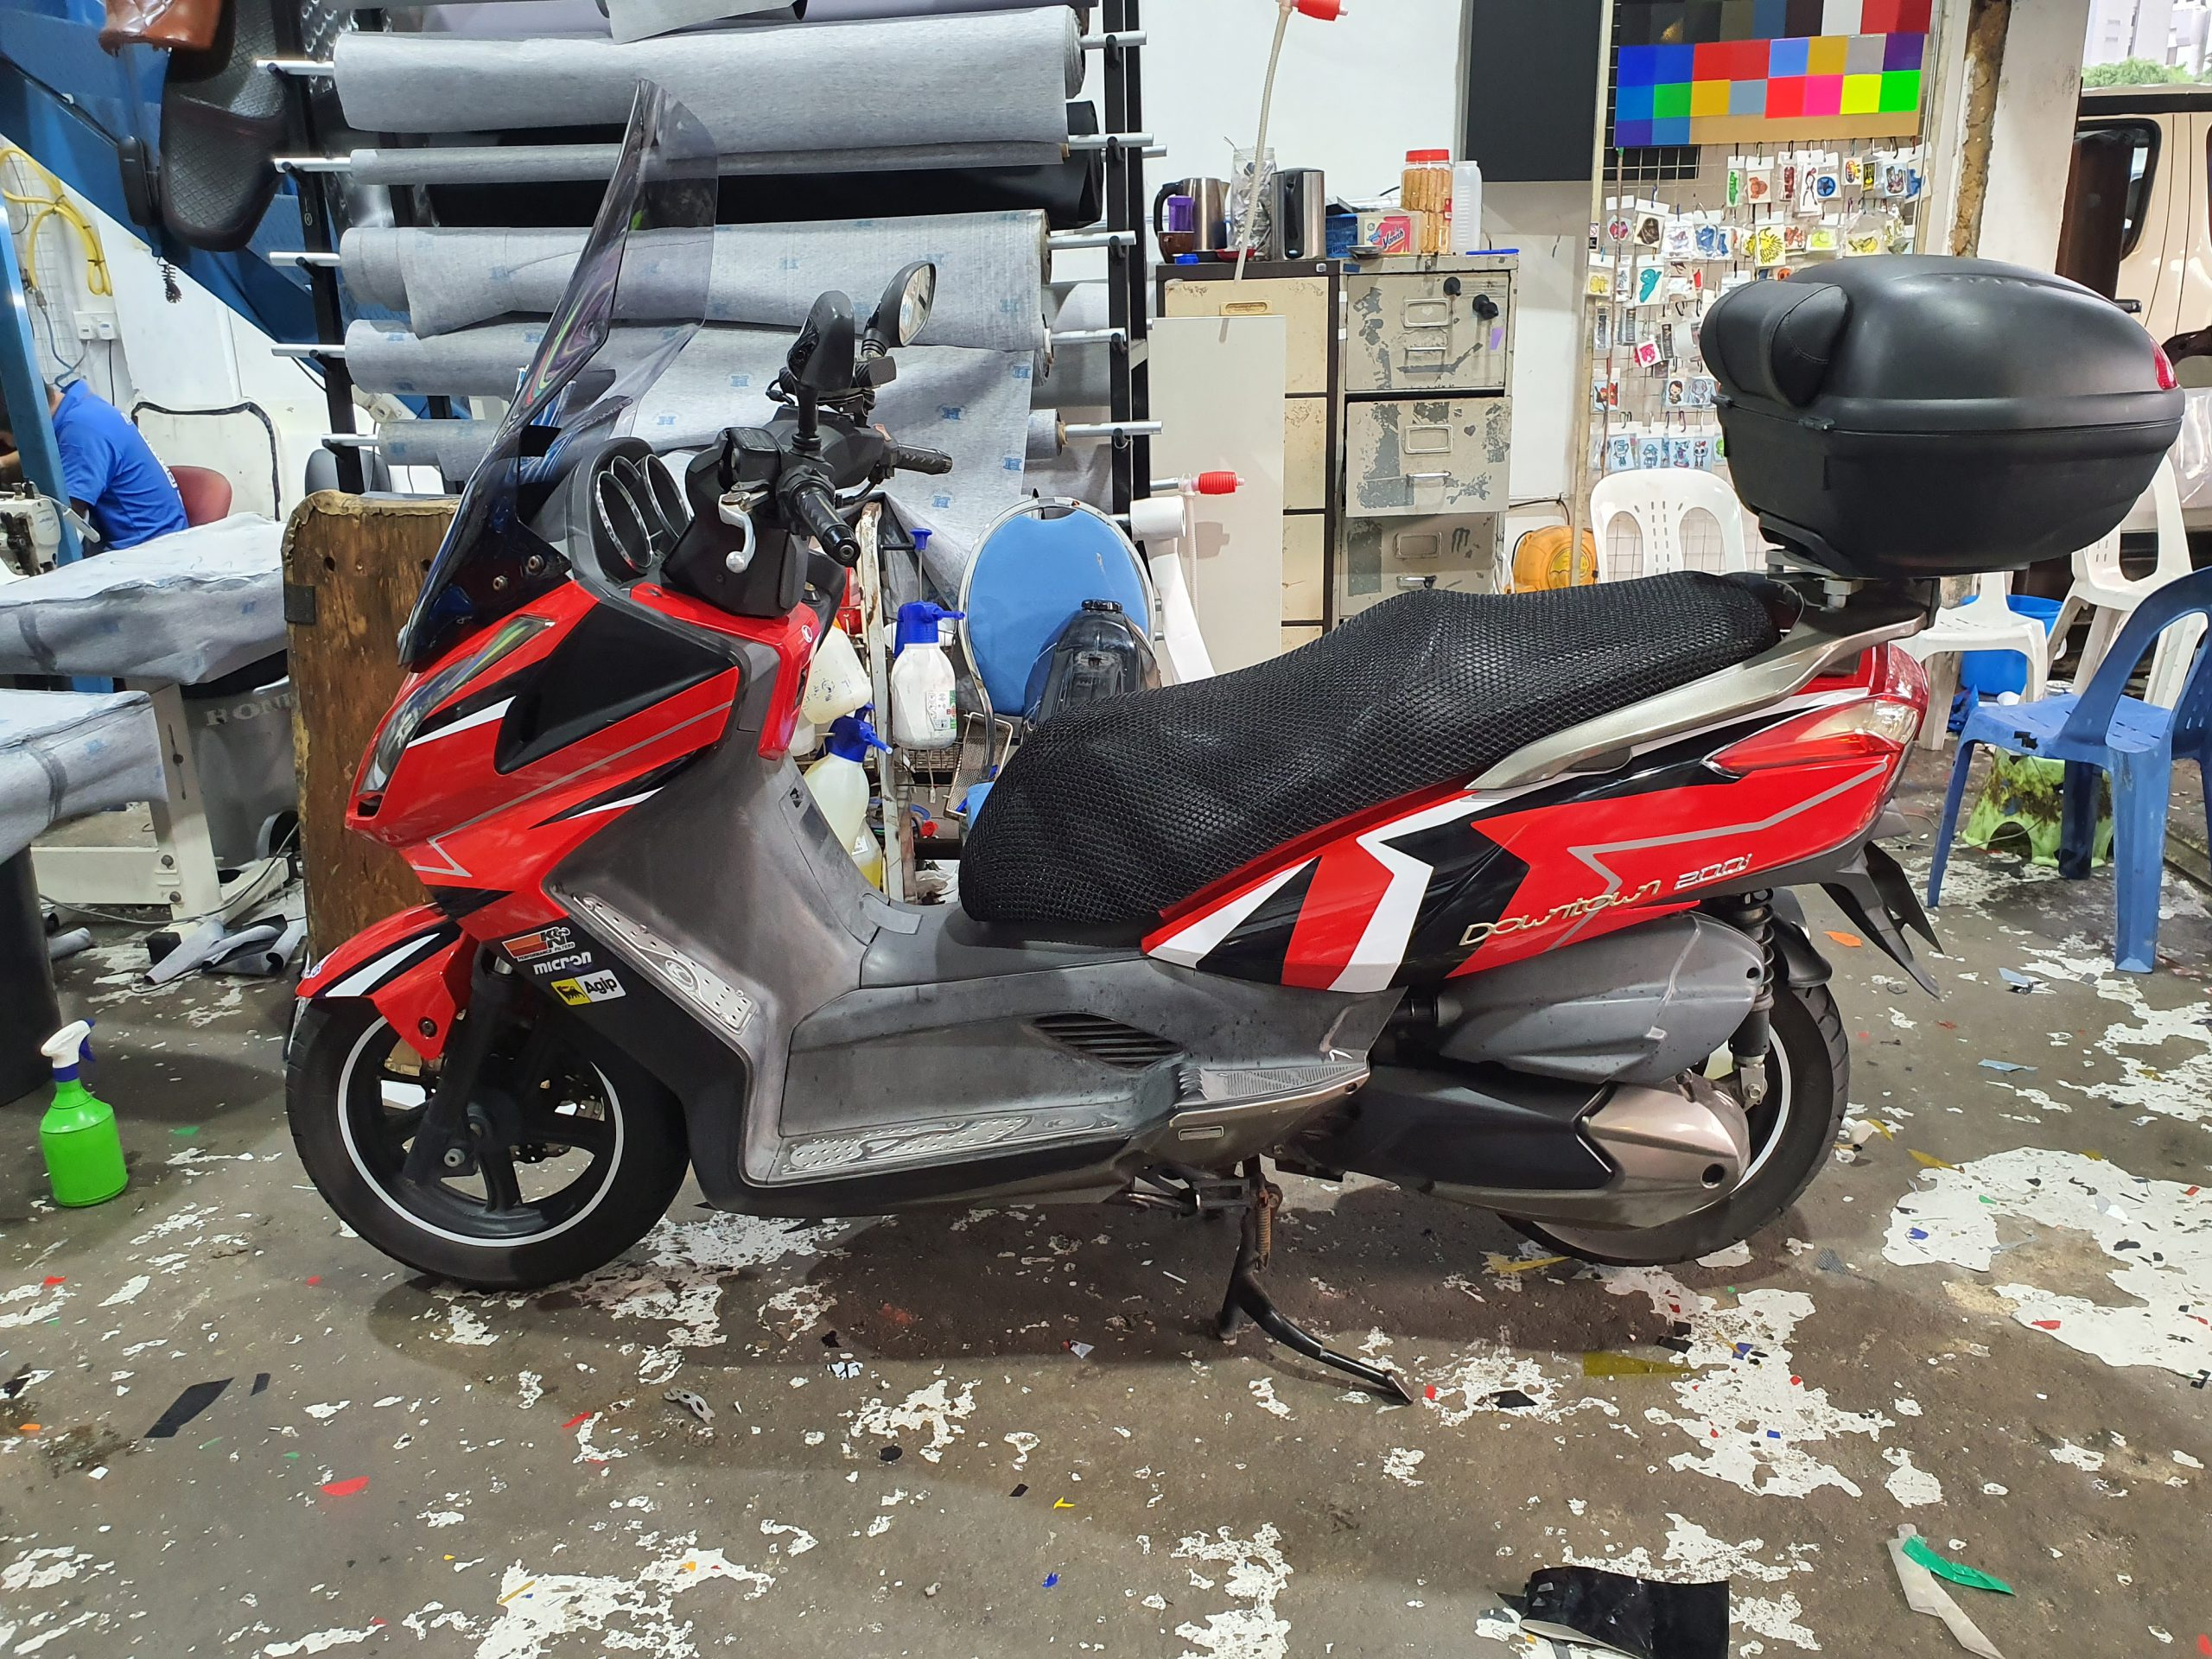 Kymco Decal Vinyl Wrap for Motorbike